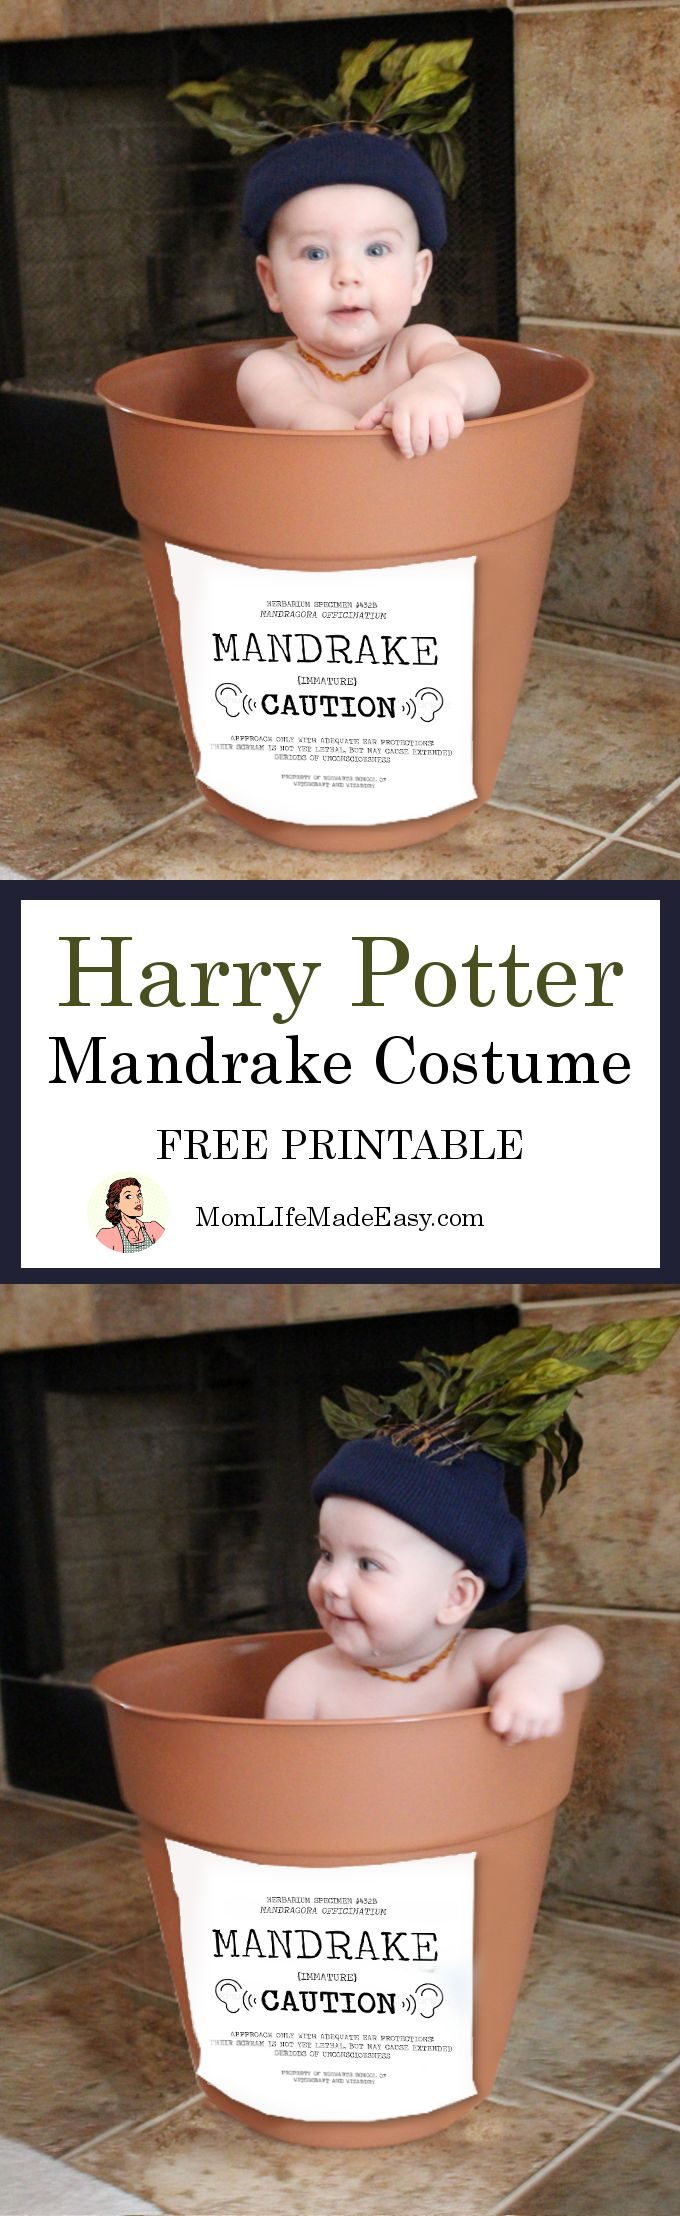 Need an easy Halloween costume for a baby? This Harry Potter Mandrake costume takes about 15 minutes (or less) to throw together, and costs only $10!!